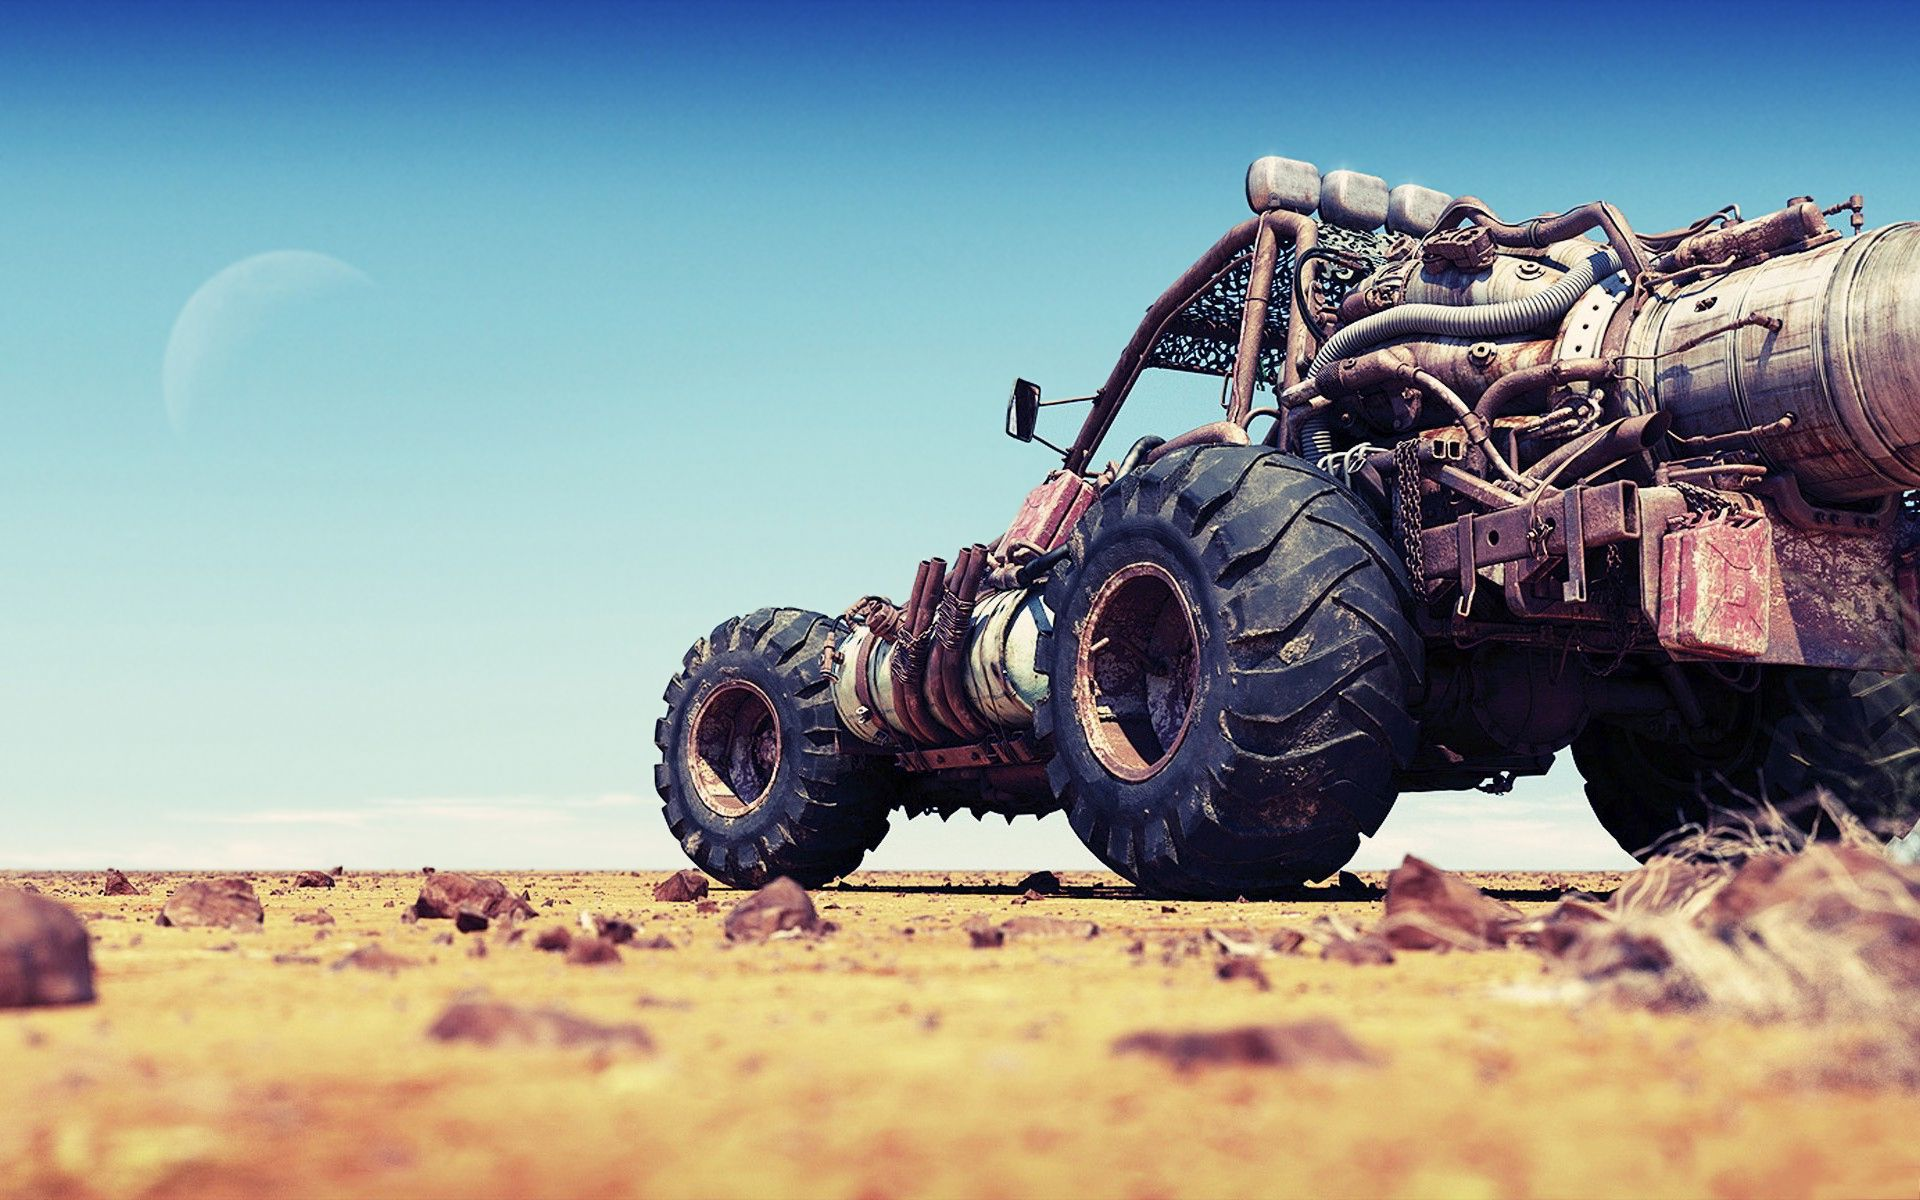 Mad max game wallpapers httphotcelebwallpaperzmad max game mad max game wallpapers httphotcelebwallpaperzmad max game wallpapers voltagebd Image collections